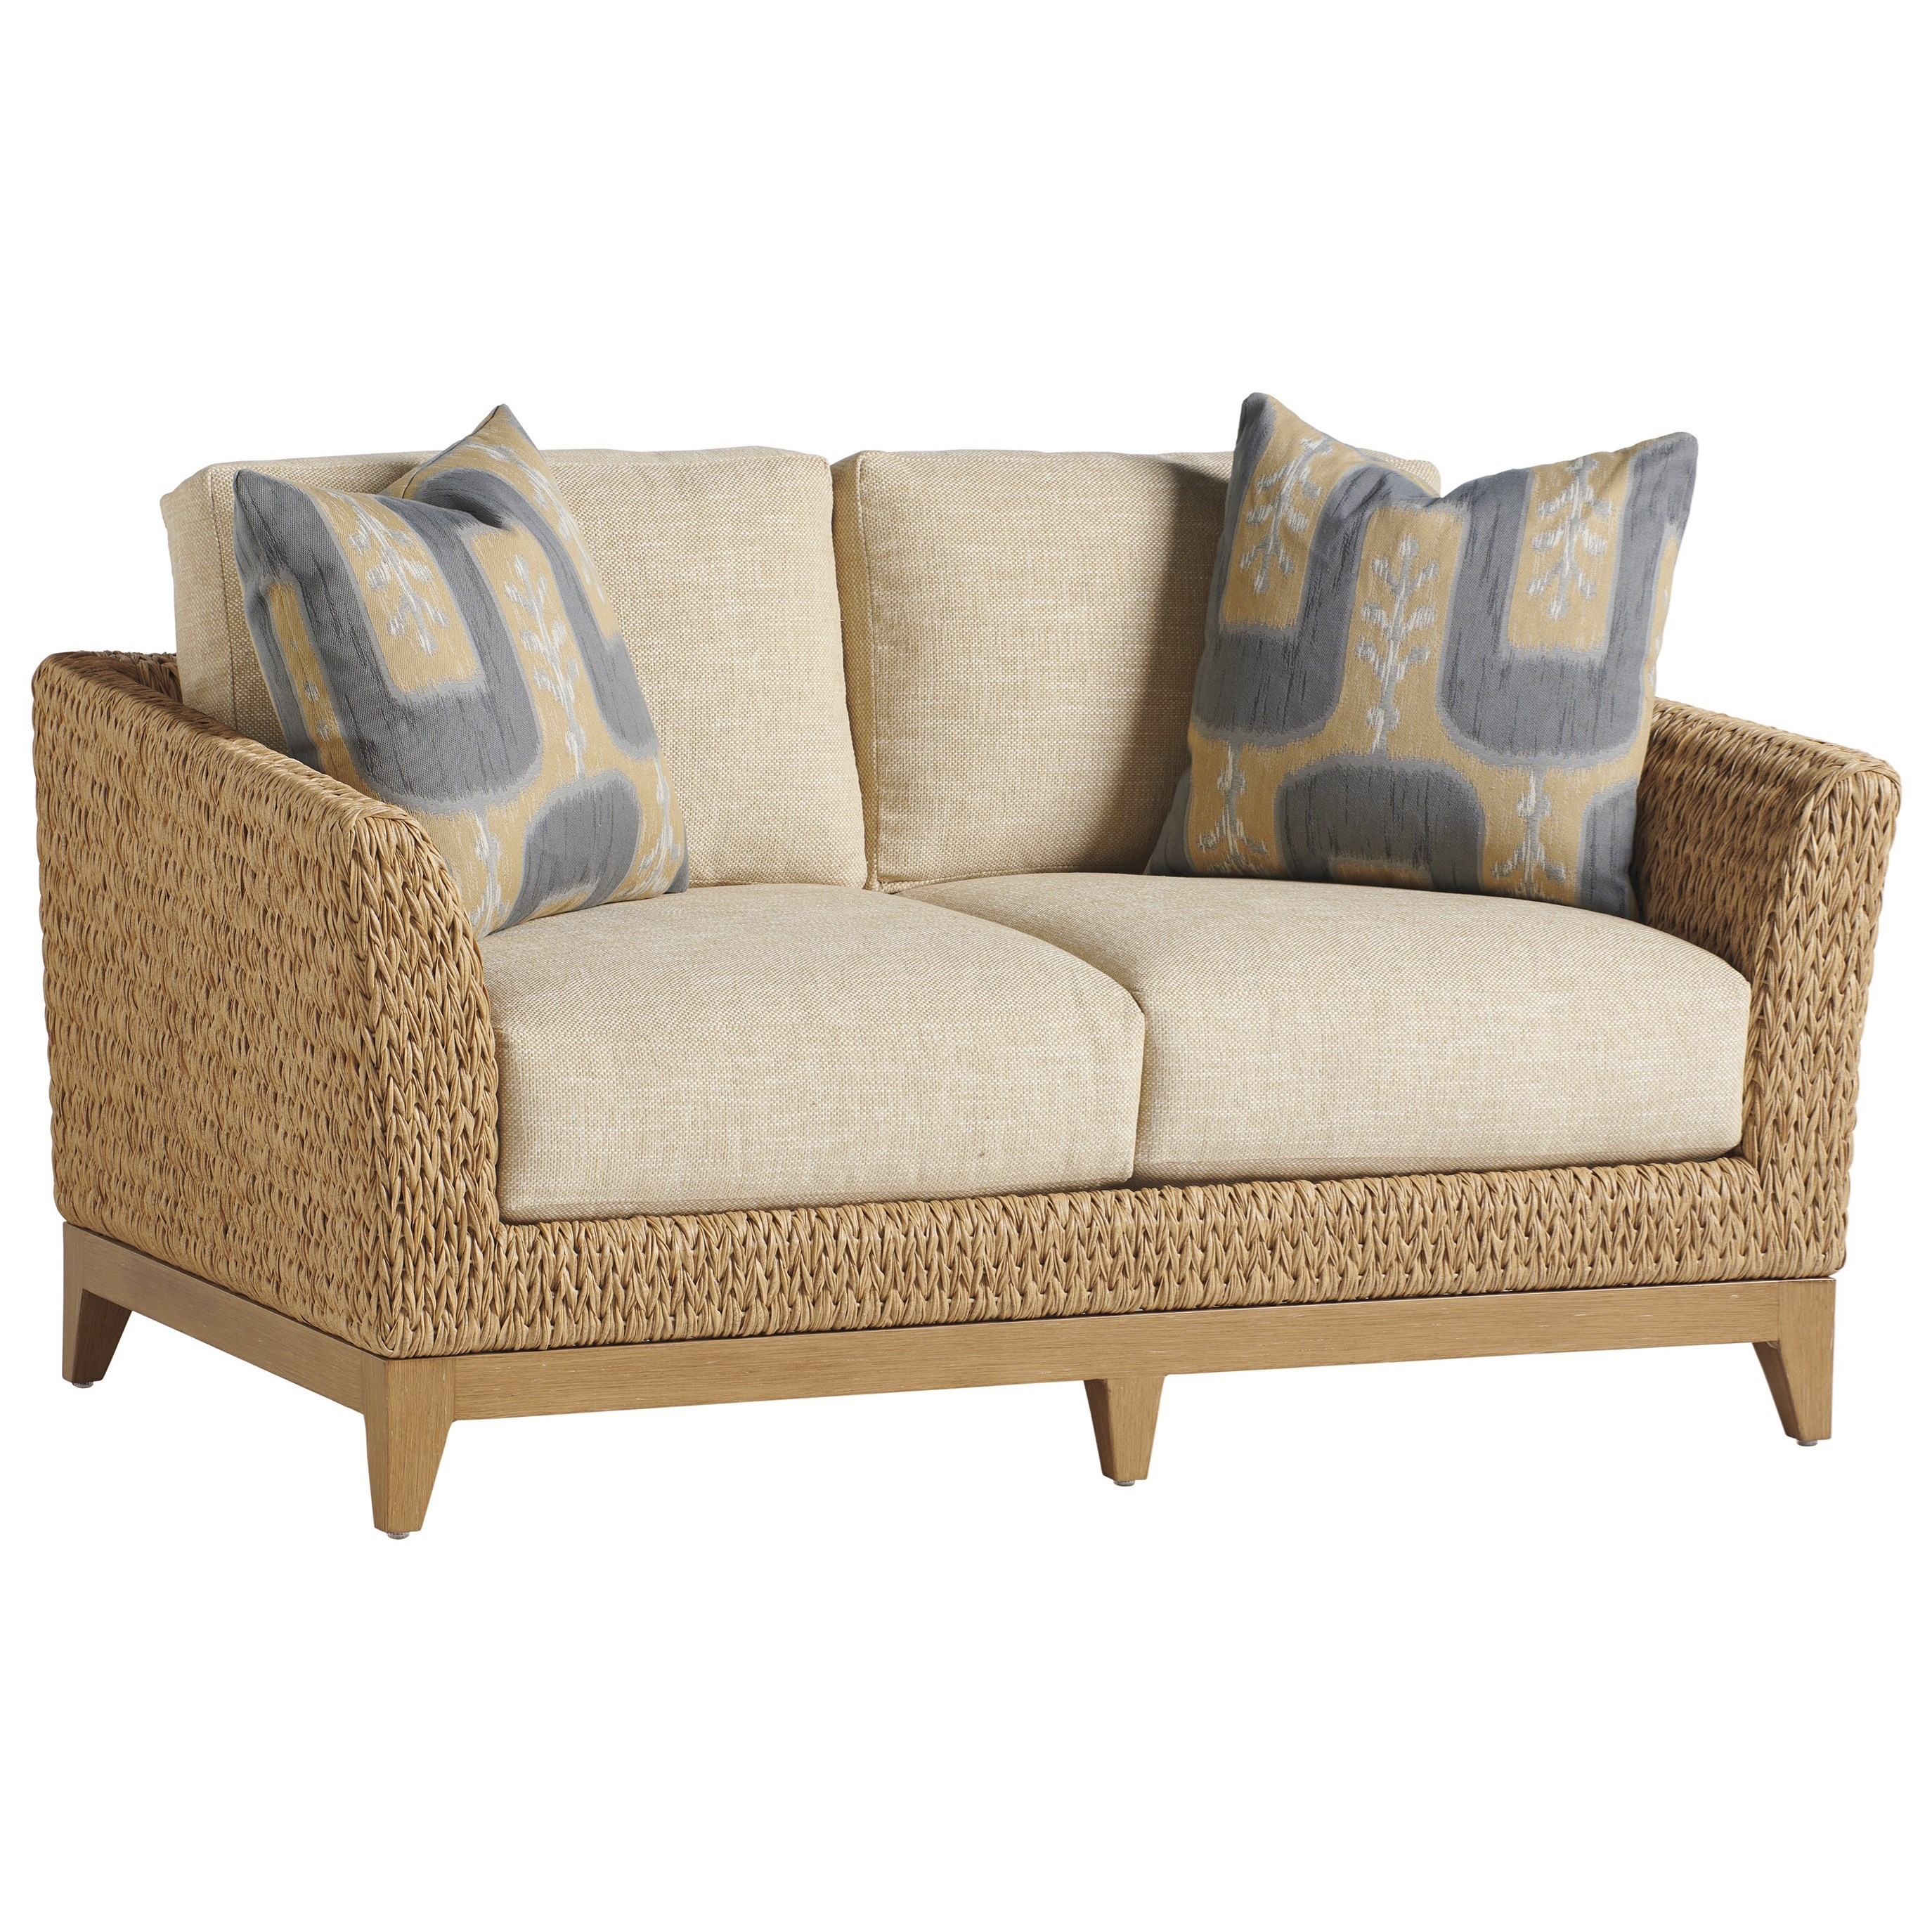 Los Altos Valley View Loveseat by Tommy Bahama Outdoor Living at Baer's Furniture